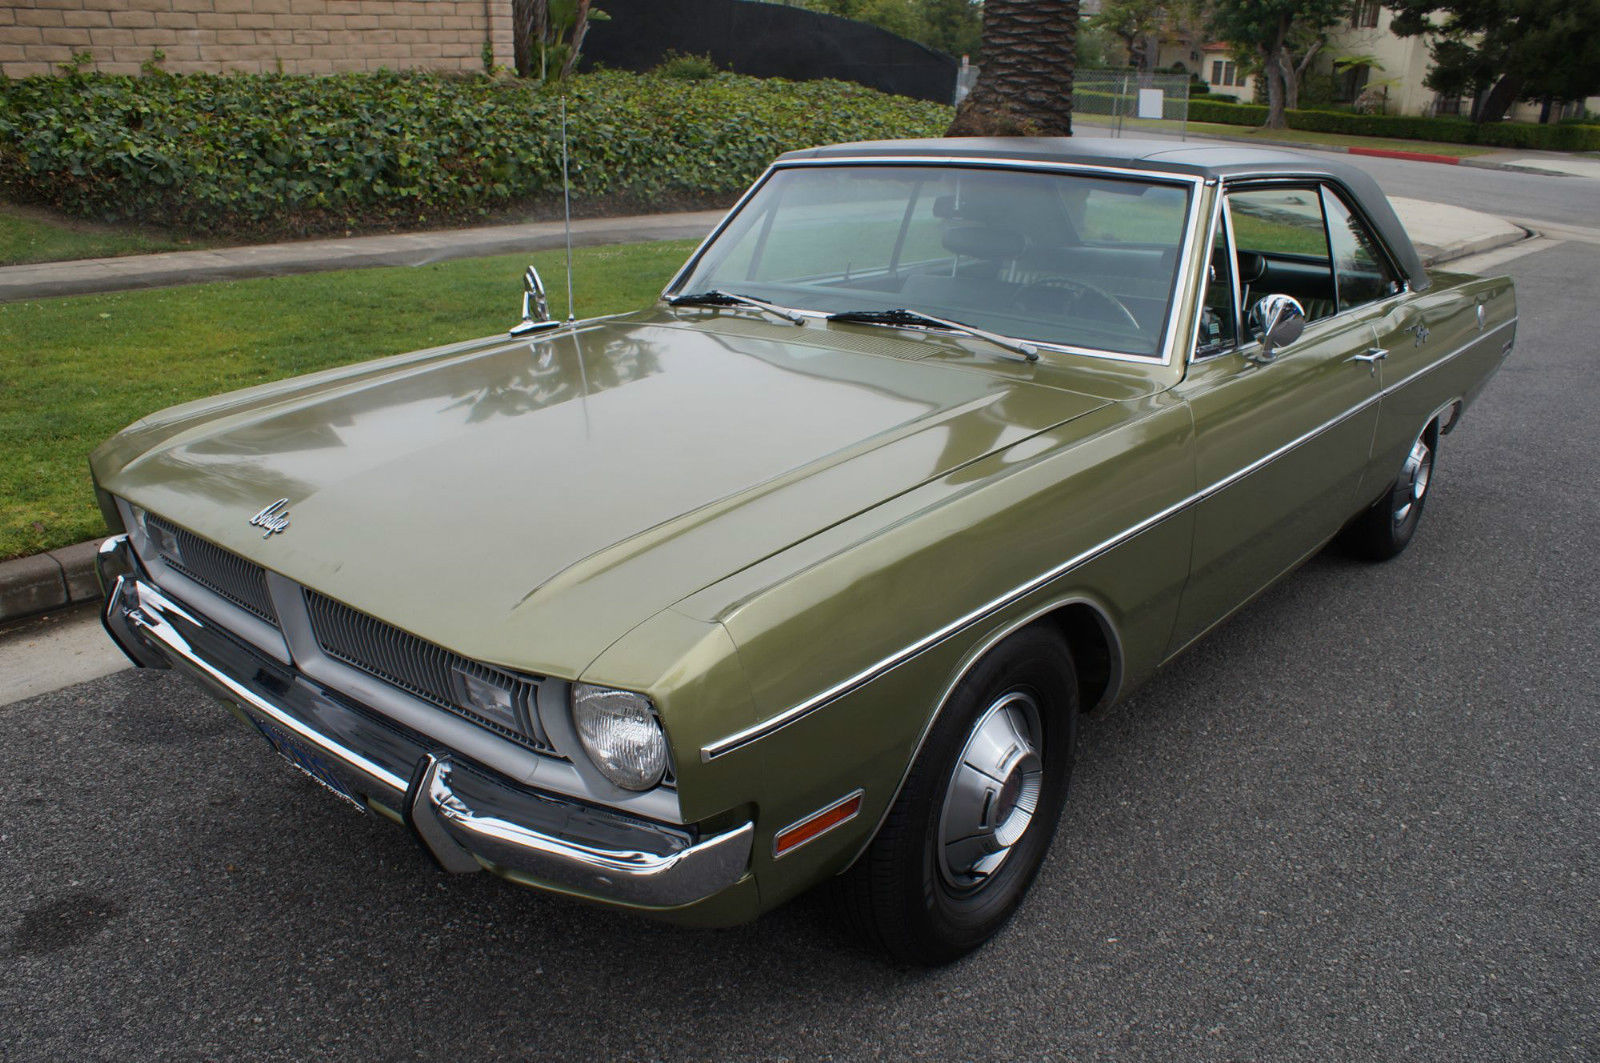 1970 Dodge Dart SWINGER 318 230HP V8 COUPE -12